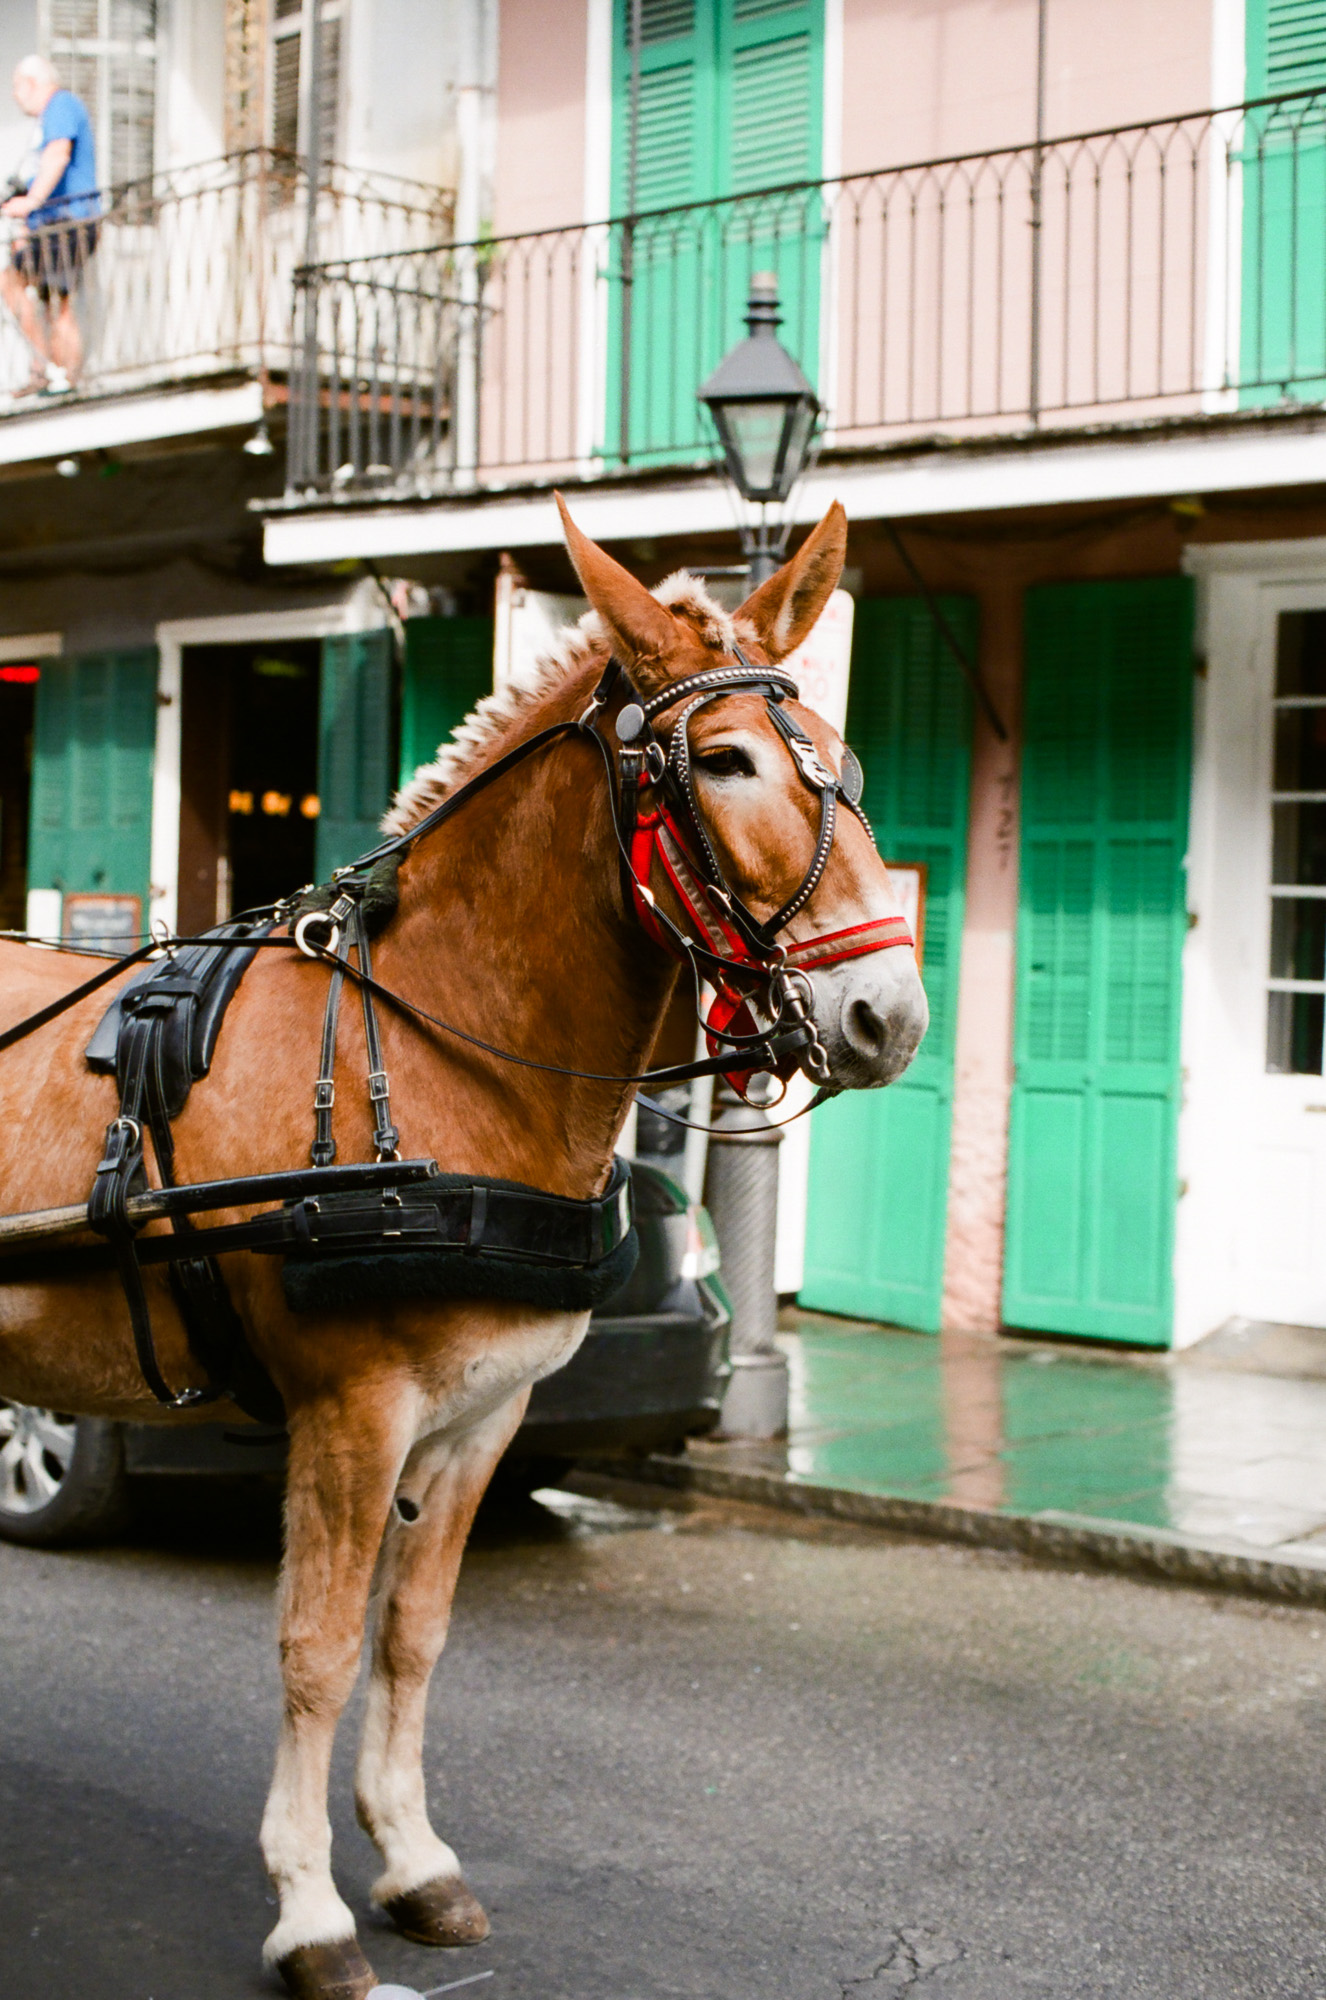 NEWORLEANS2013_©kristinmyoung_SquareLORes-3.jpg